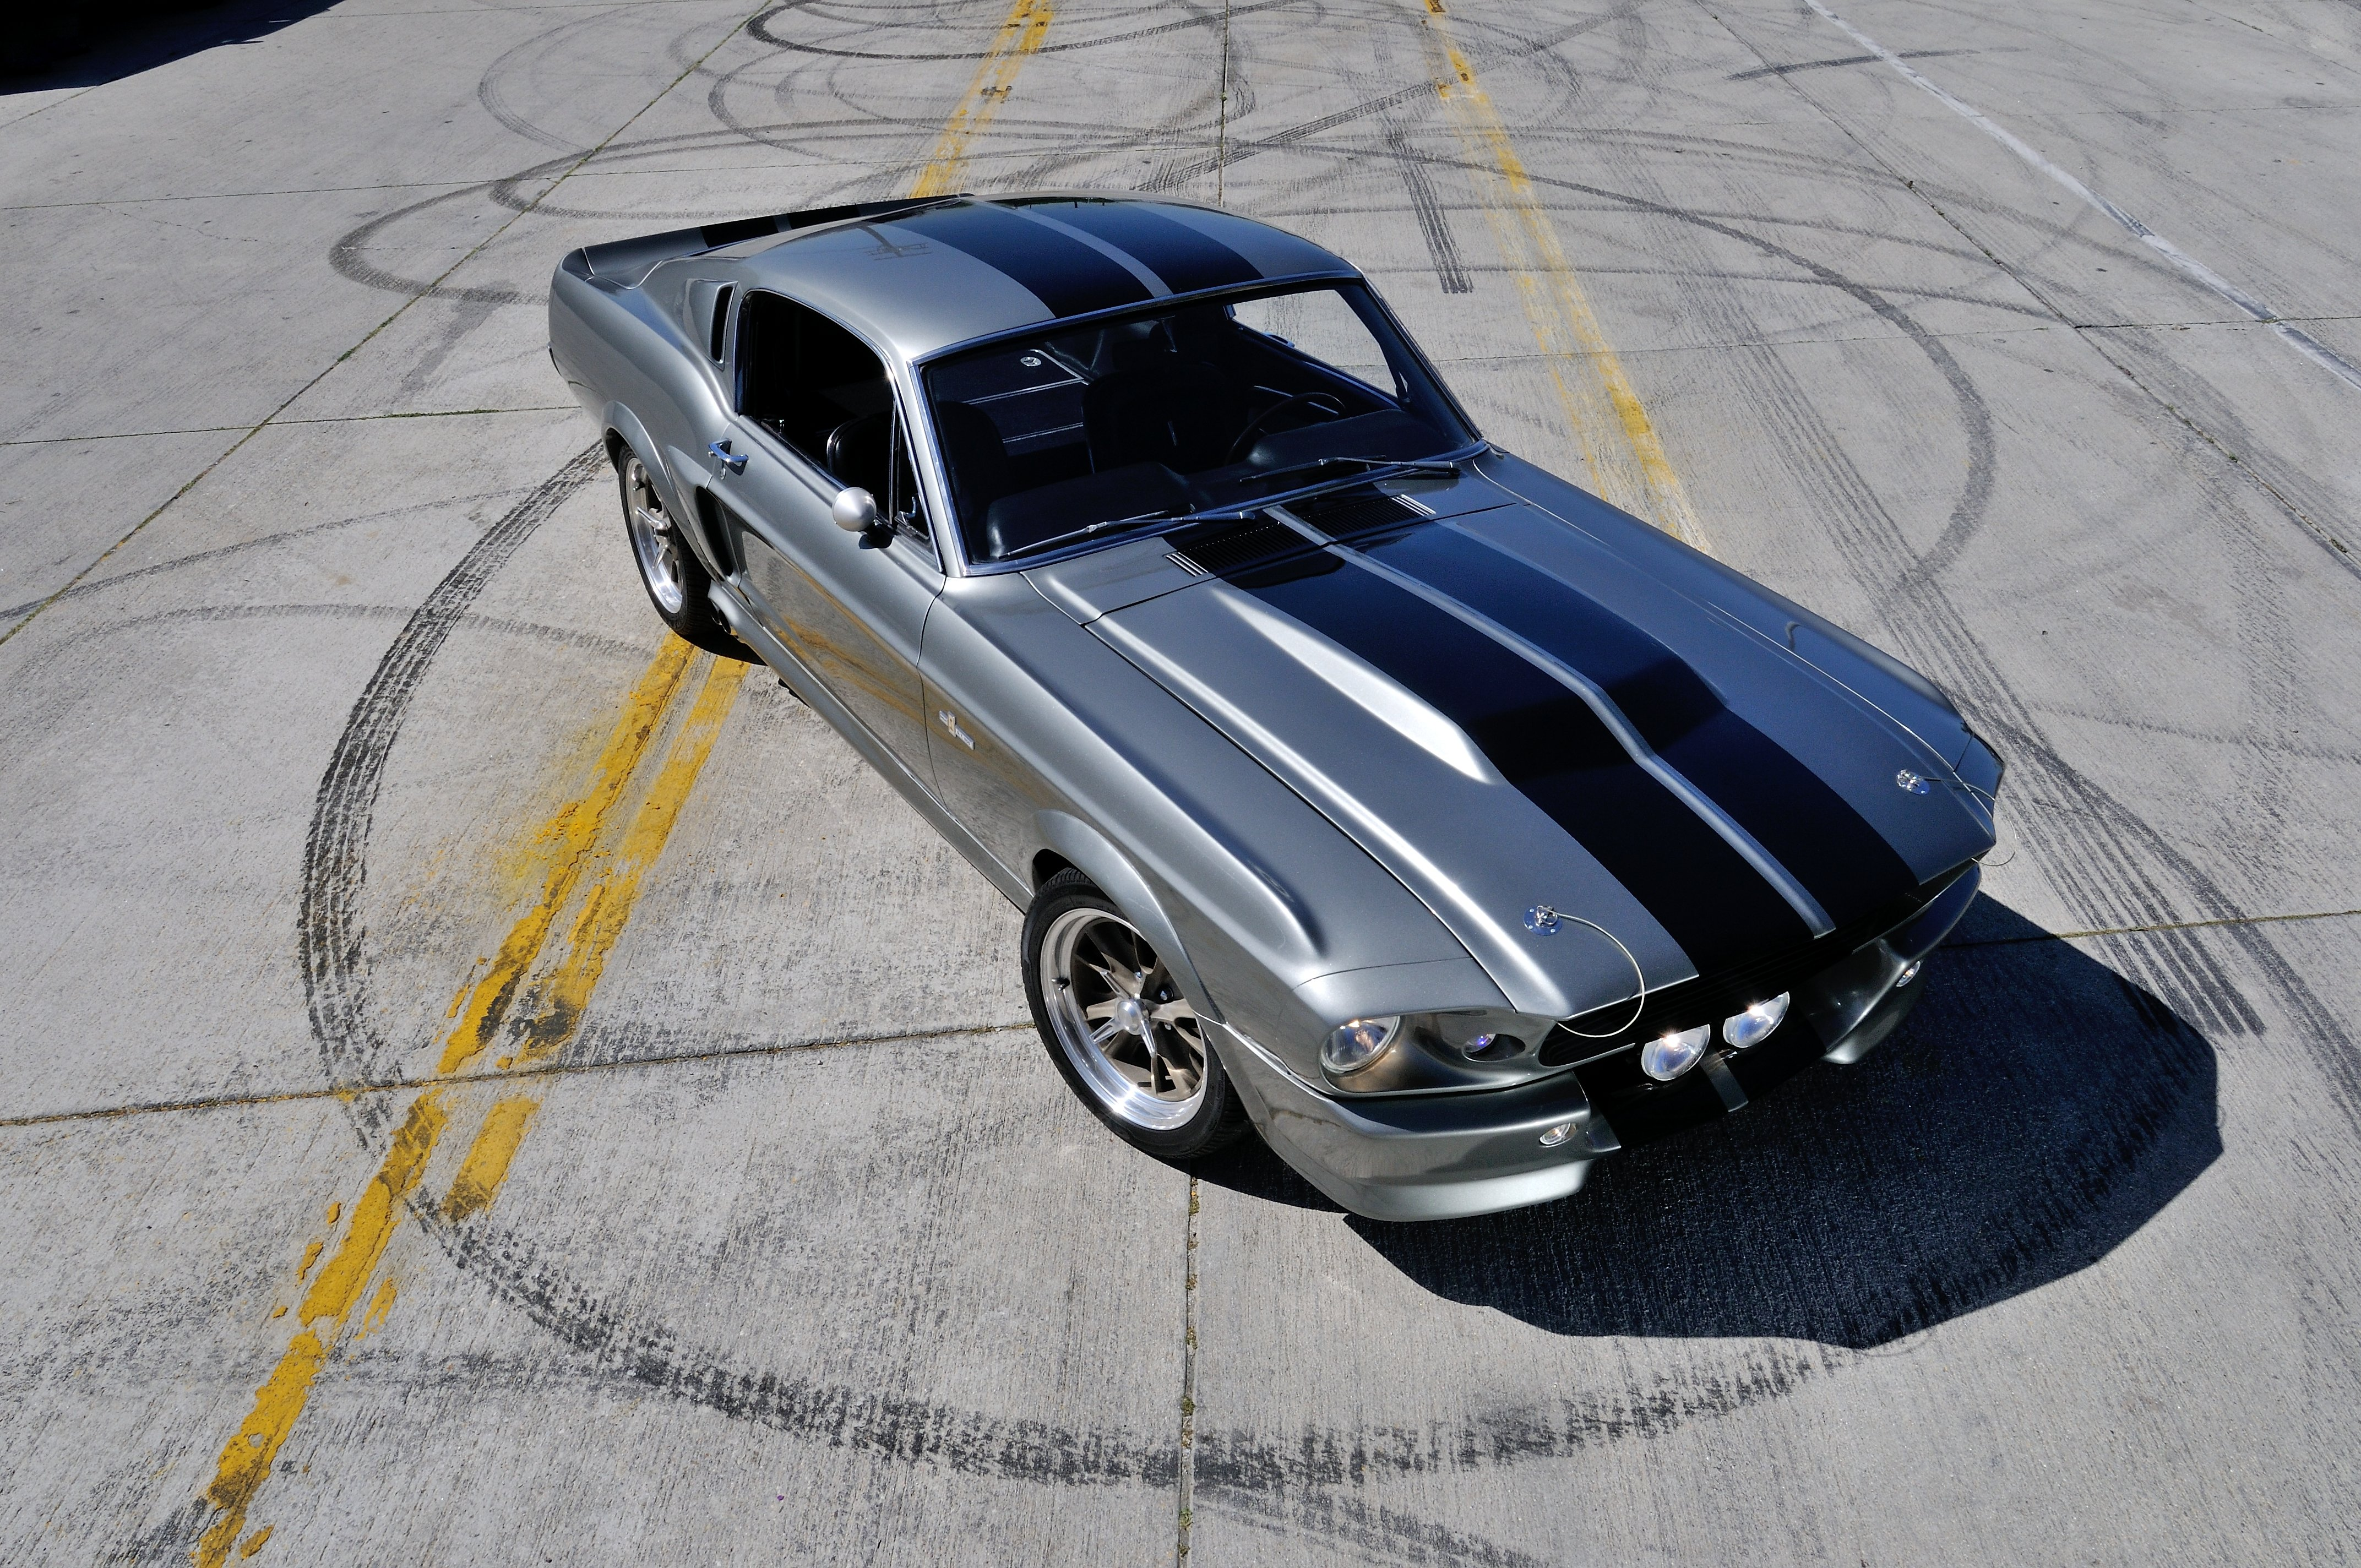 1967 Ford Mustang Shelby Gt500 Eleanor Gone In 60 Seconds